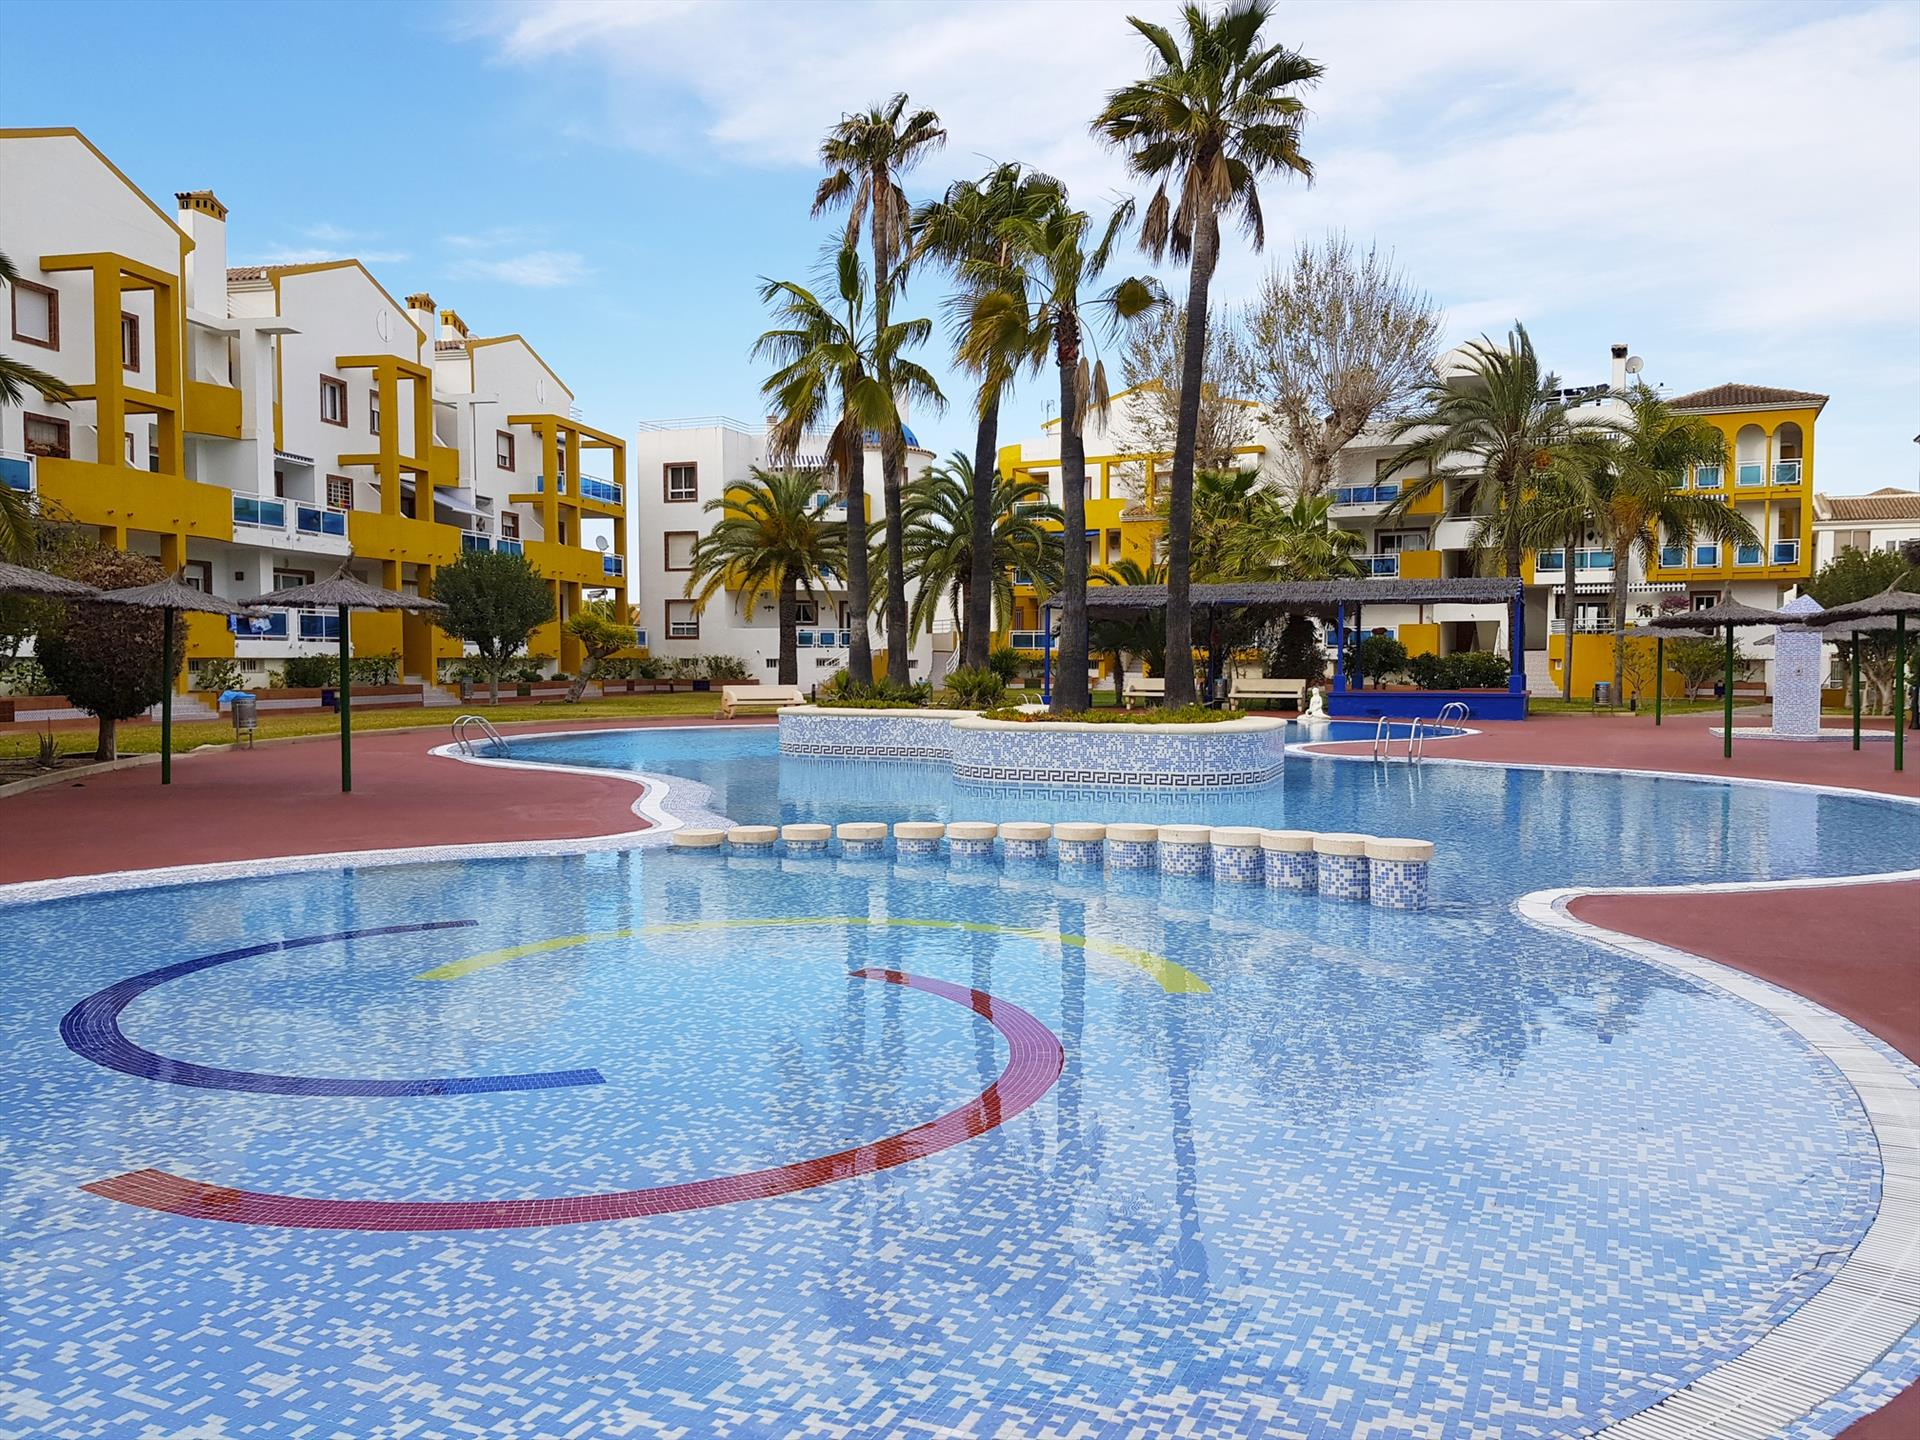 AP102, Beautiful and romantic apartment in Oliva, on the Costa Blanca, Spain  with communal pool for 4 persons.....